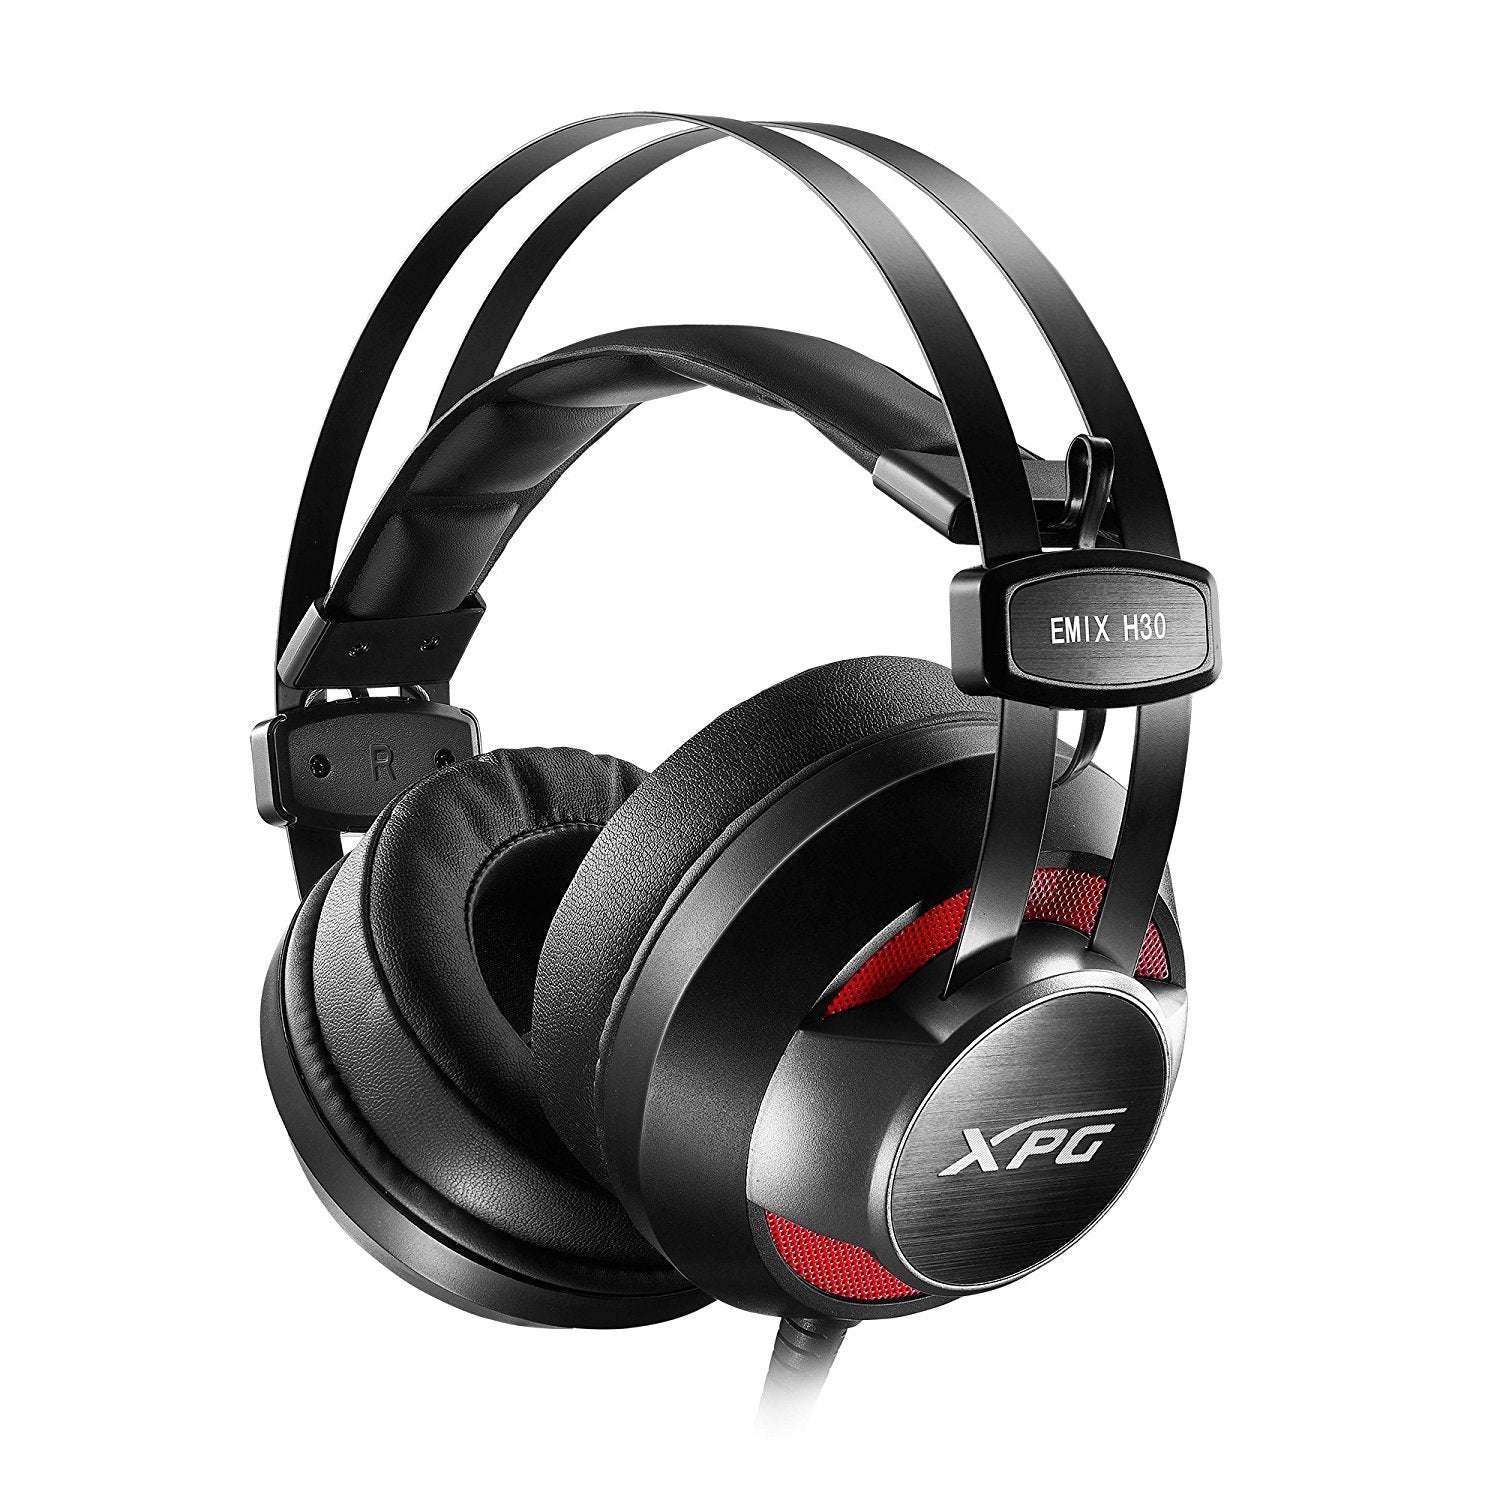 ADATA XPG Emix H30 Gaming Headset + SOLOX F30 USB Amplifier